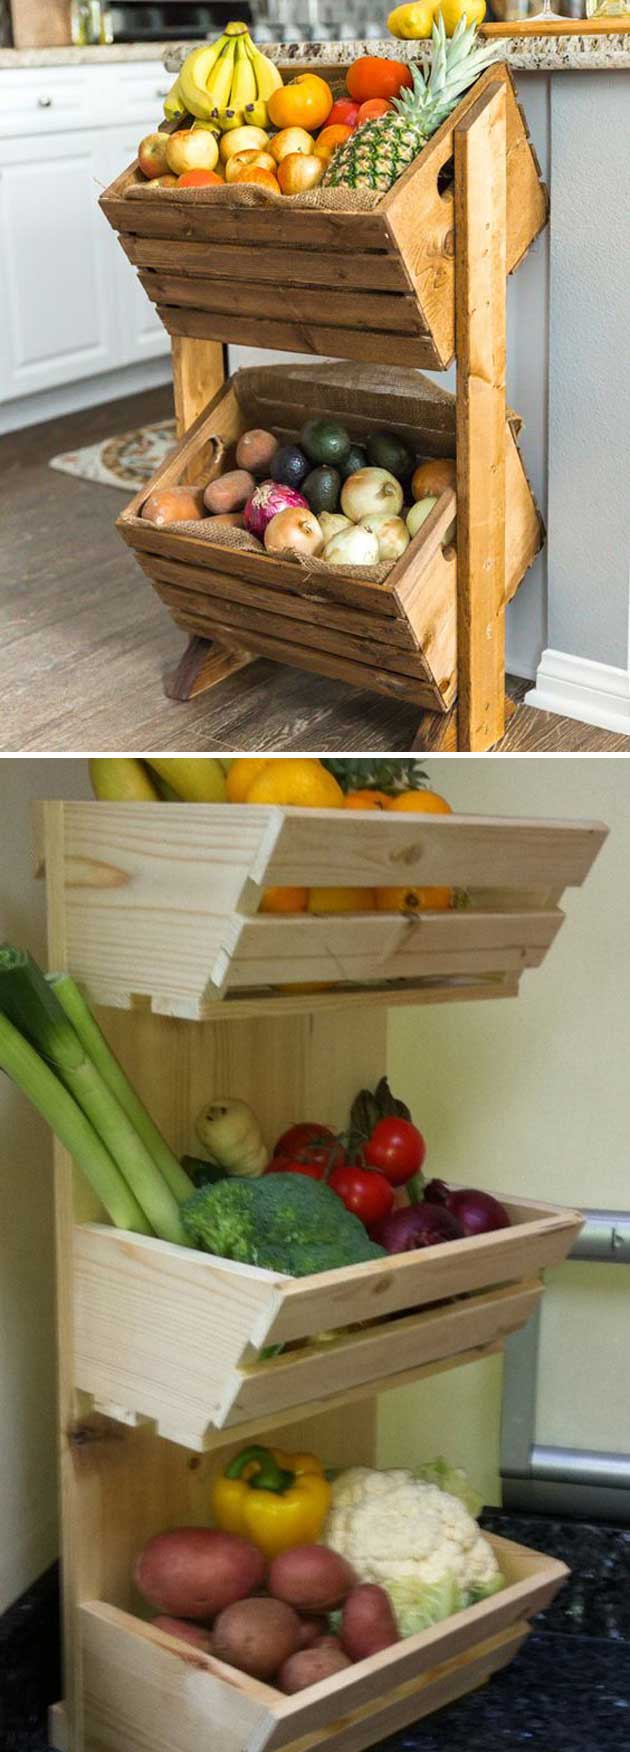 DIY Multi Tier Wood Produce Stan.